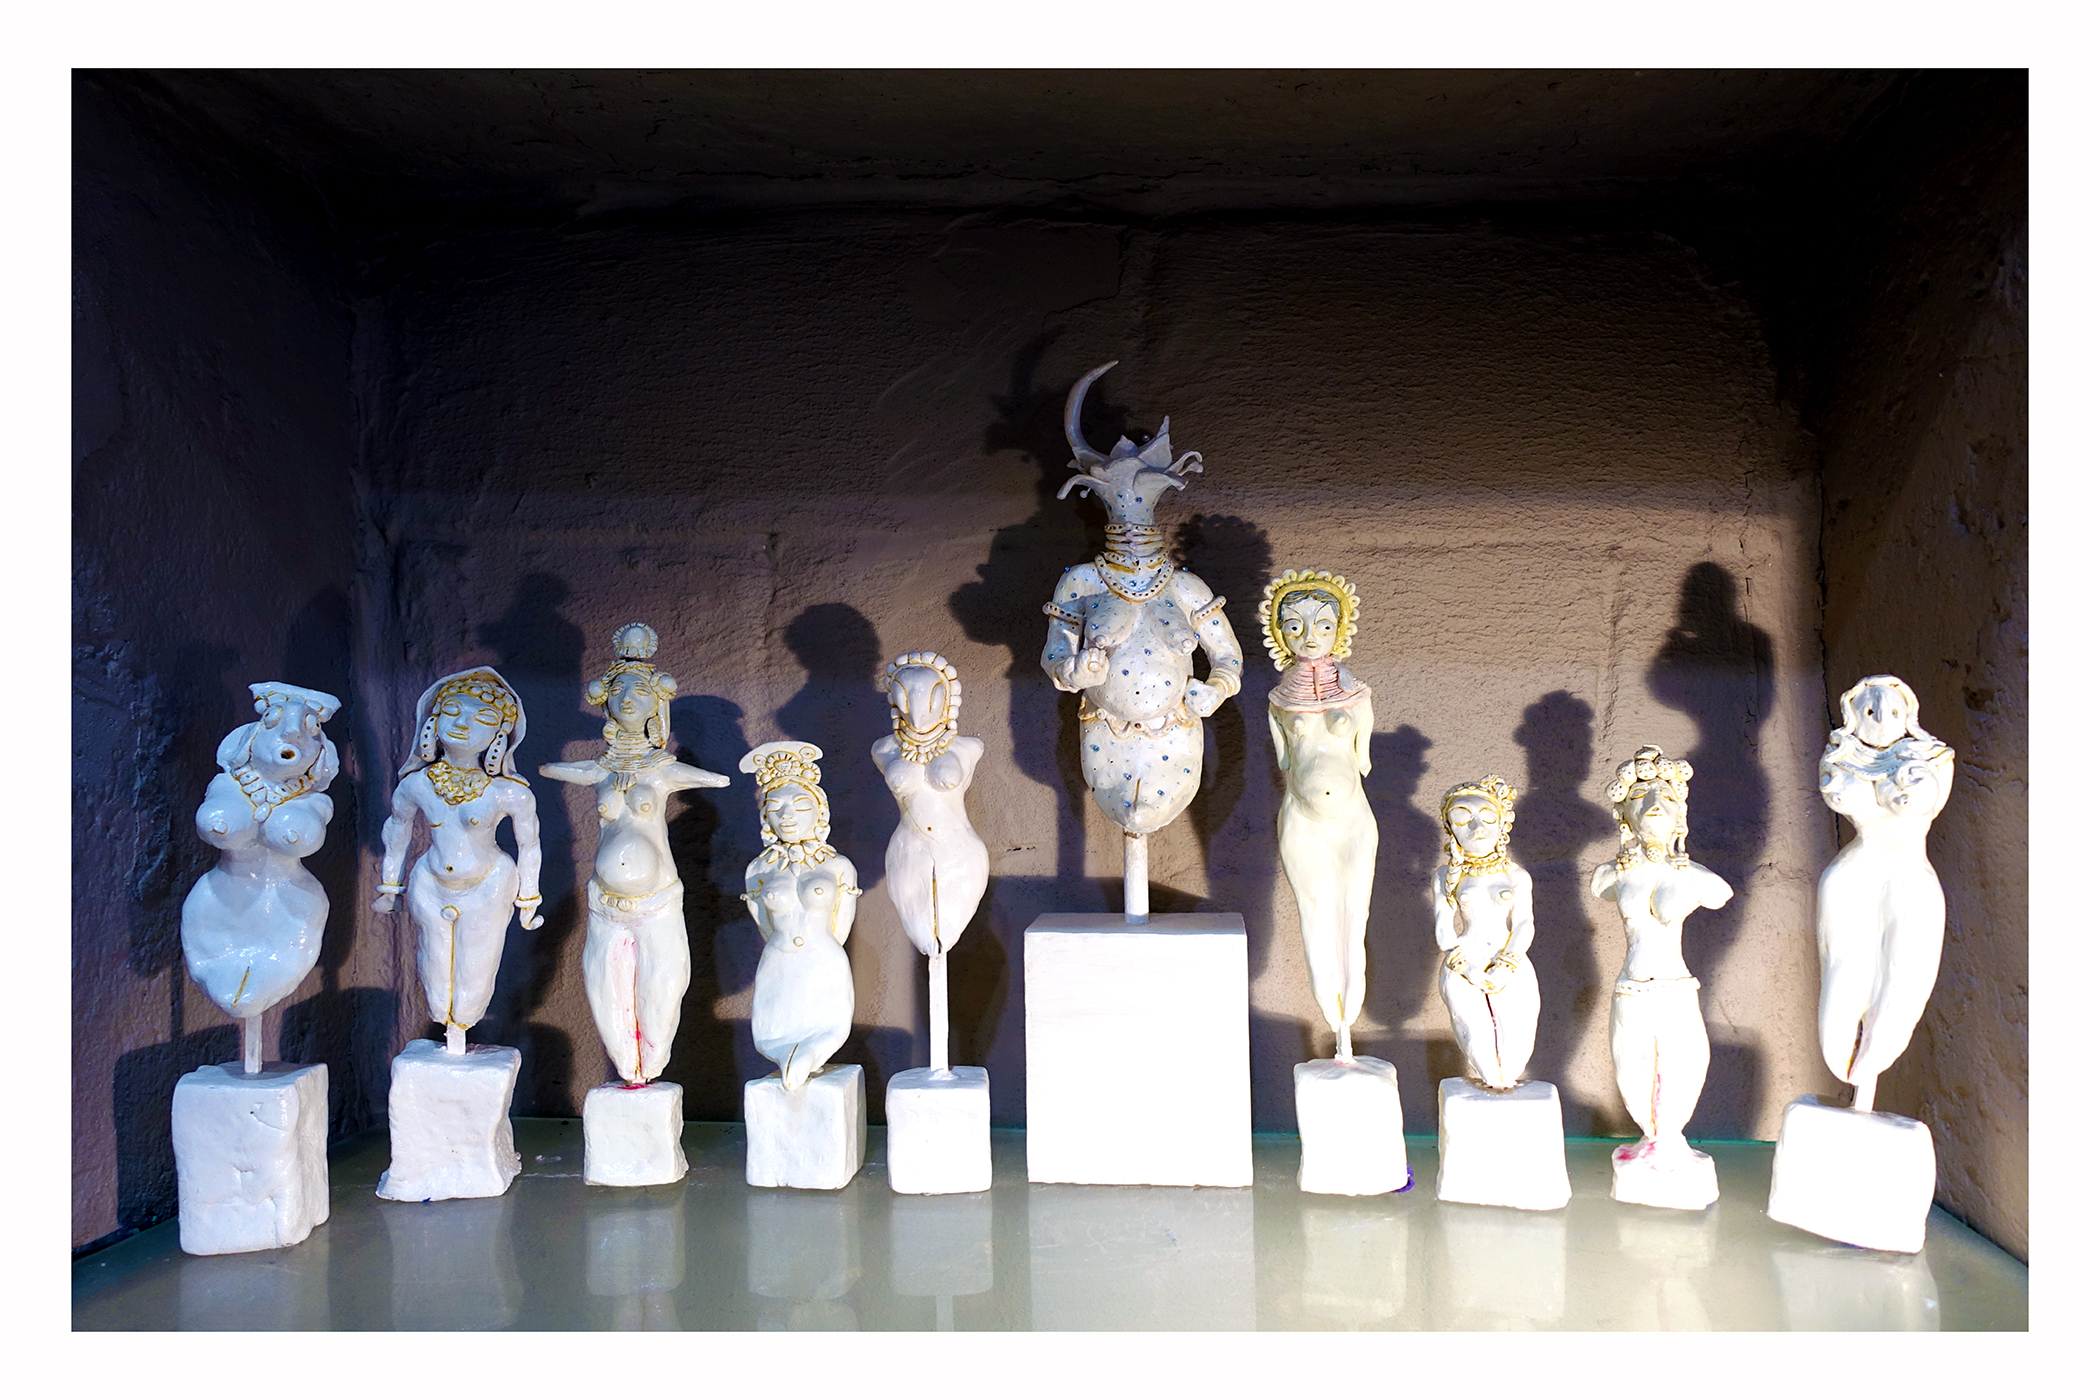 10 Standing Goddesses by  Jaishri Abichandani from a body of work of 108 pieces inspired by a childhood psyche recollection.